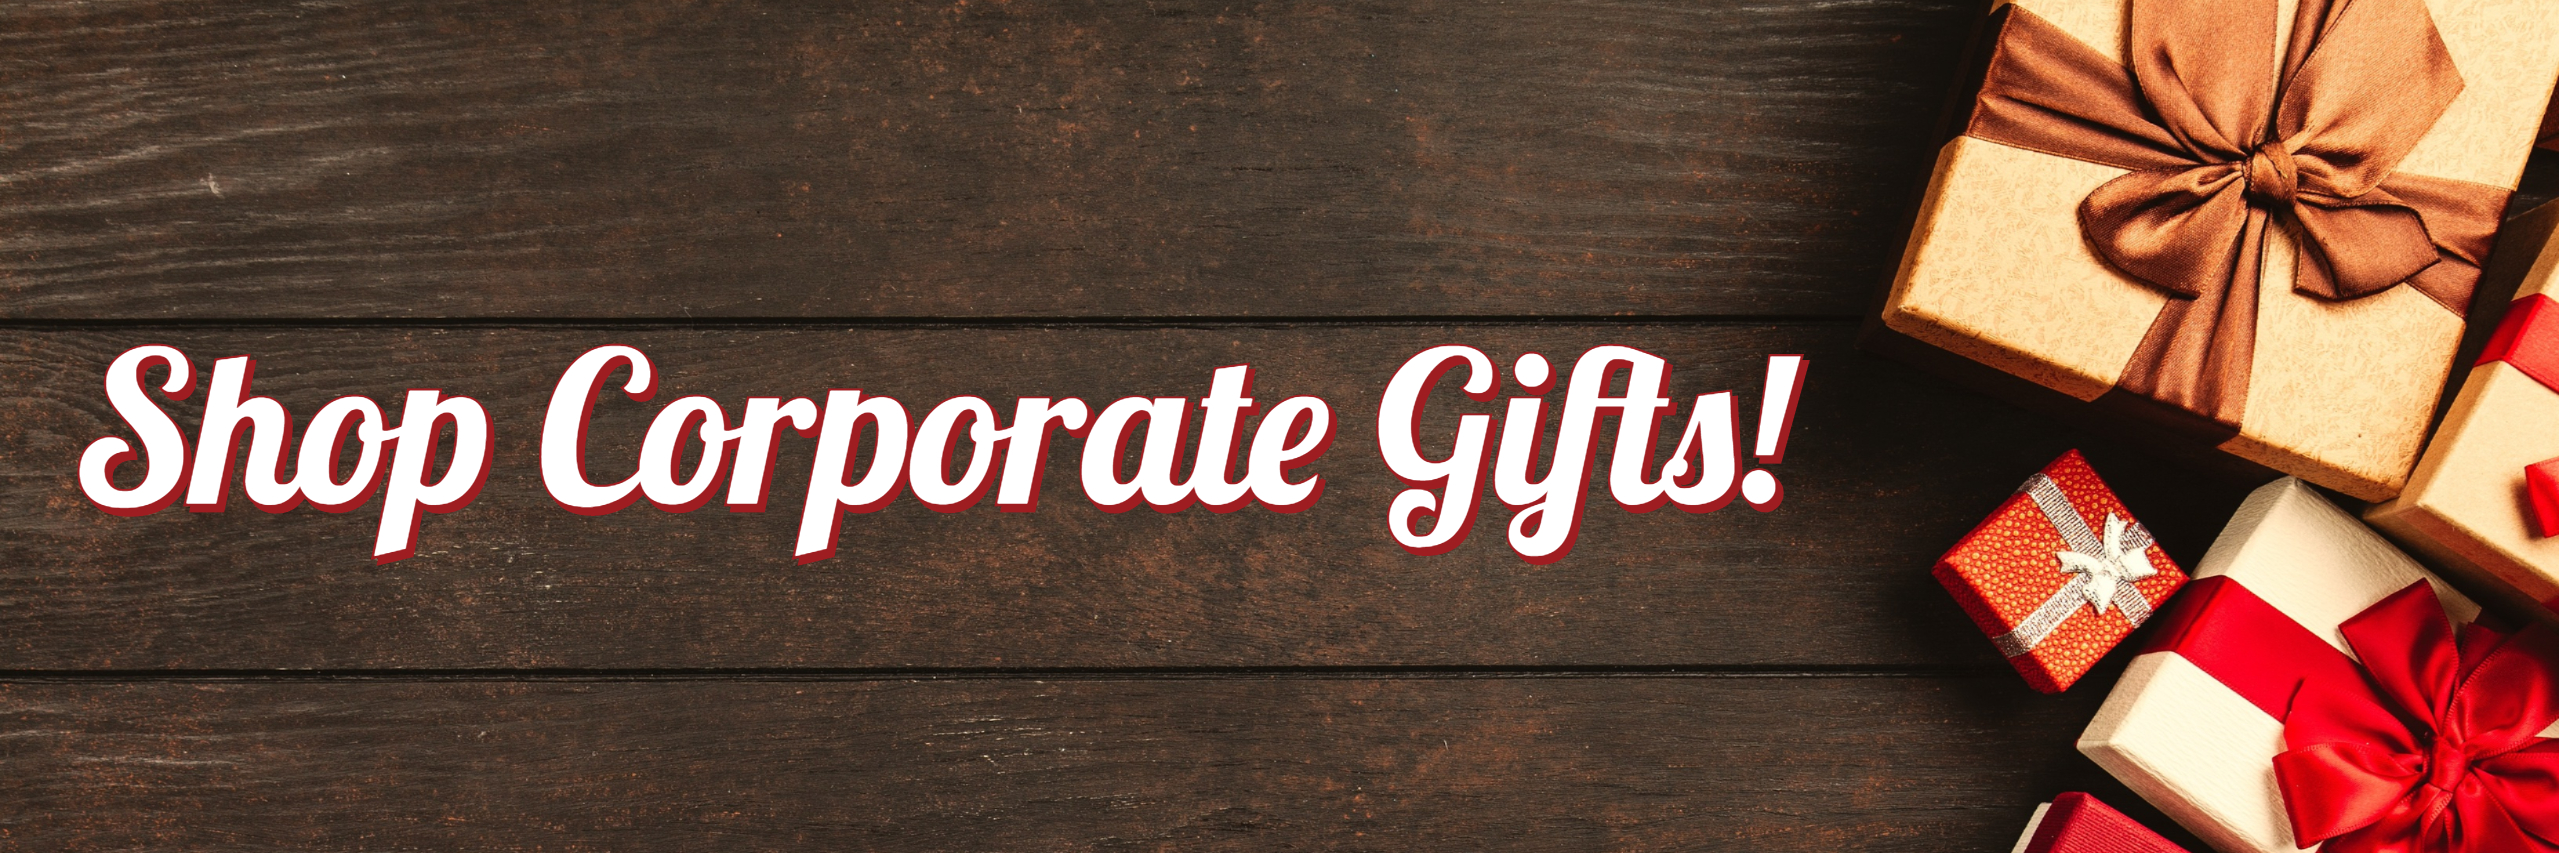 Shop Corporate Gifts at WisconsinMade Artisan Collective